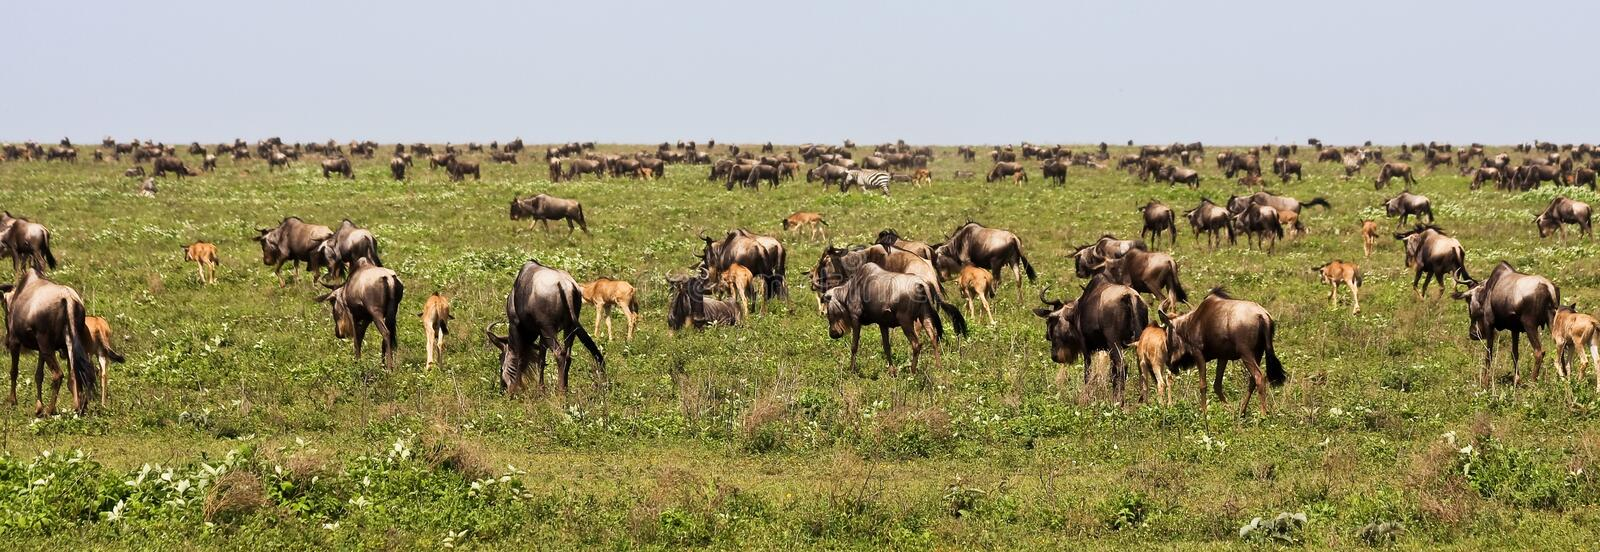 The Great Migration of Wildebeests in Serengeti stock photo